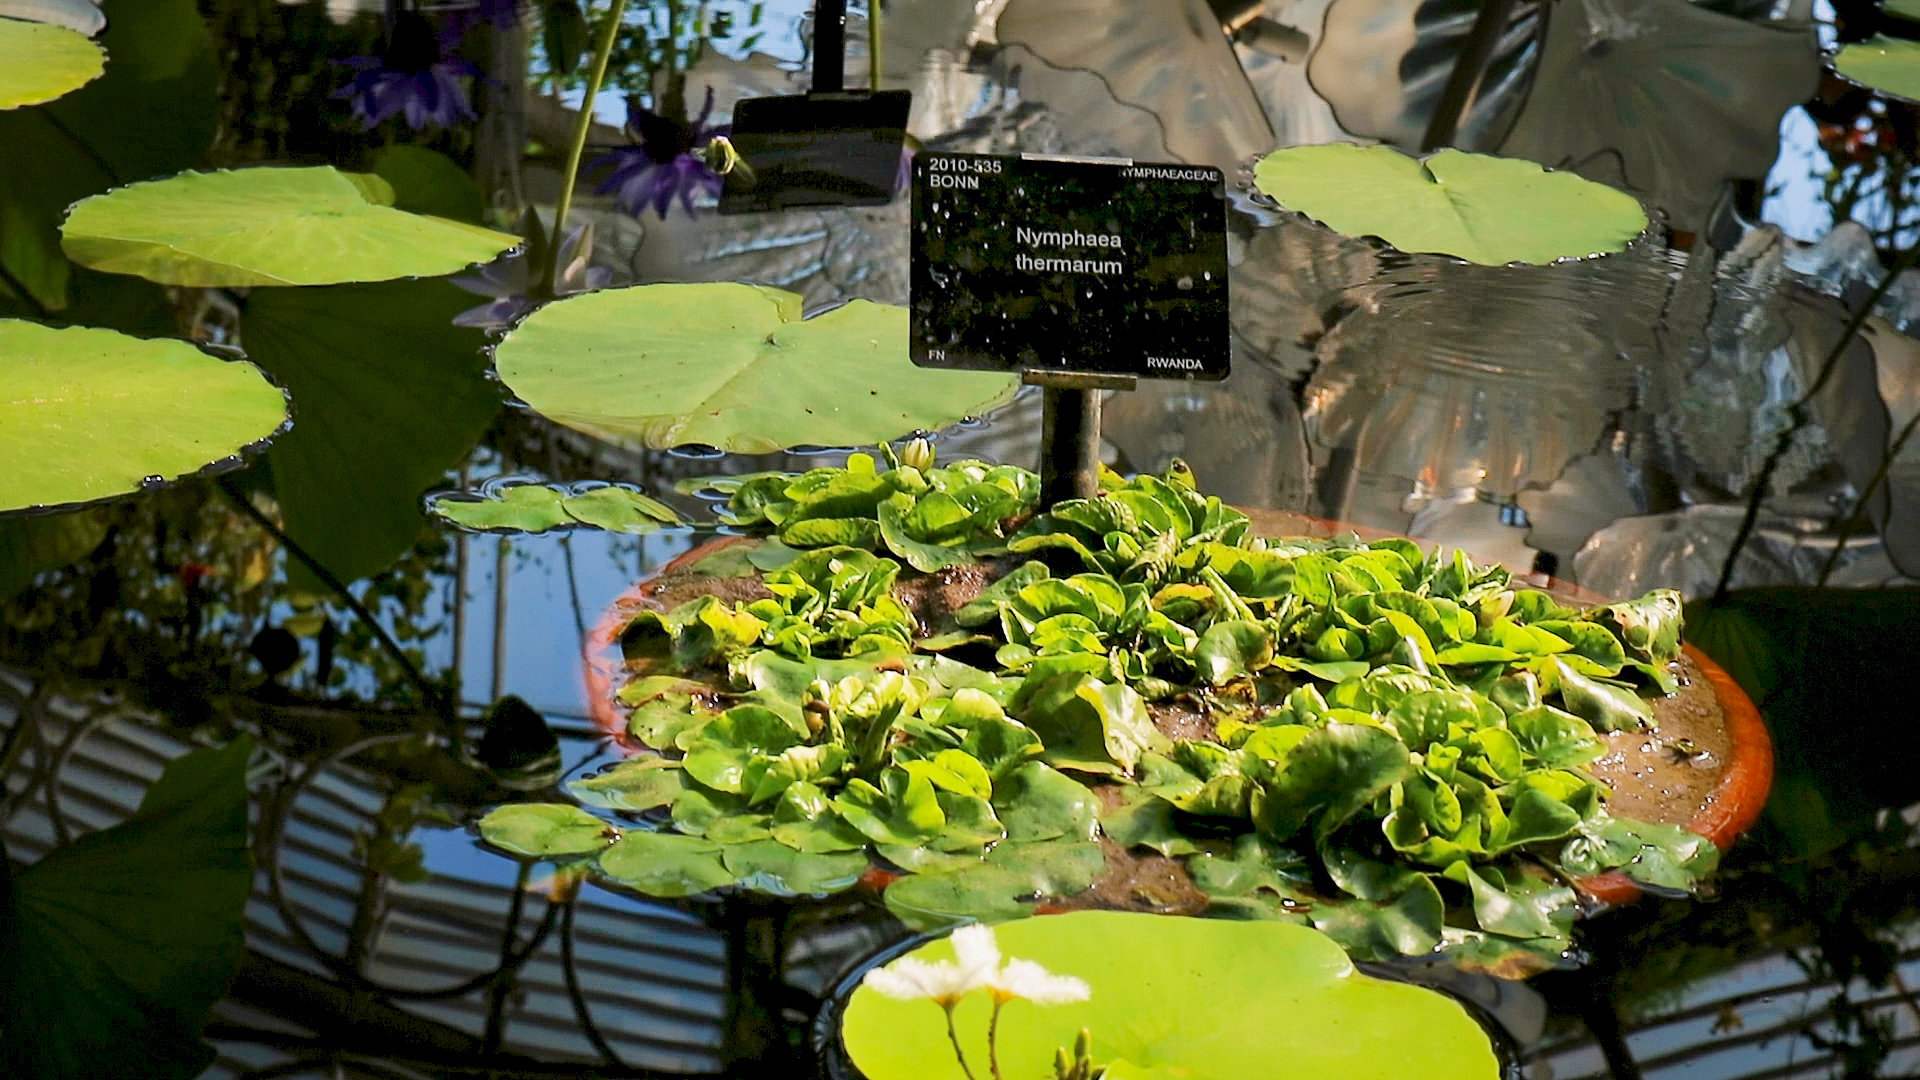 A picture of the smallest water Lily in the world while on water at Kew gardens